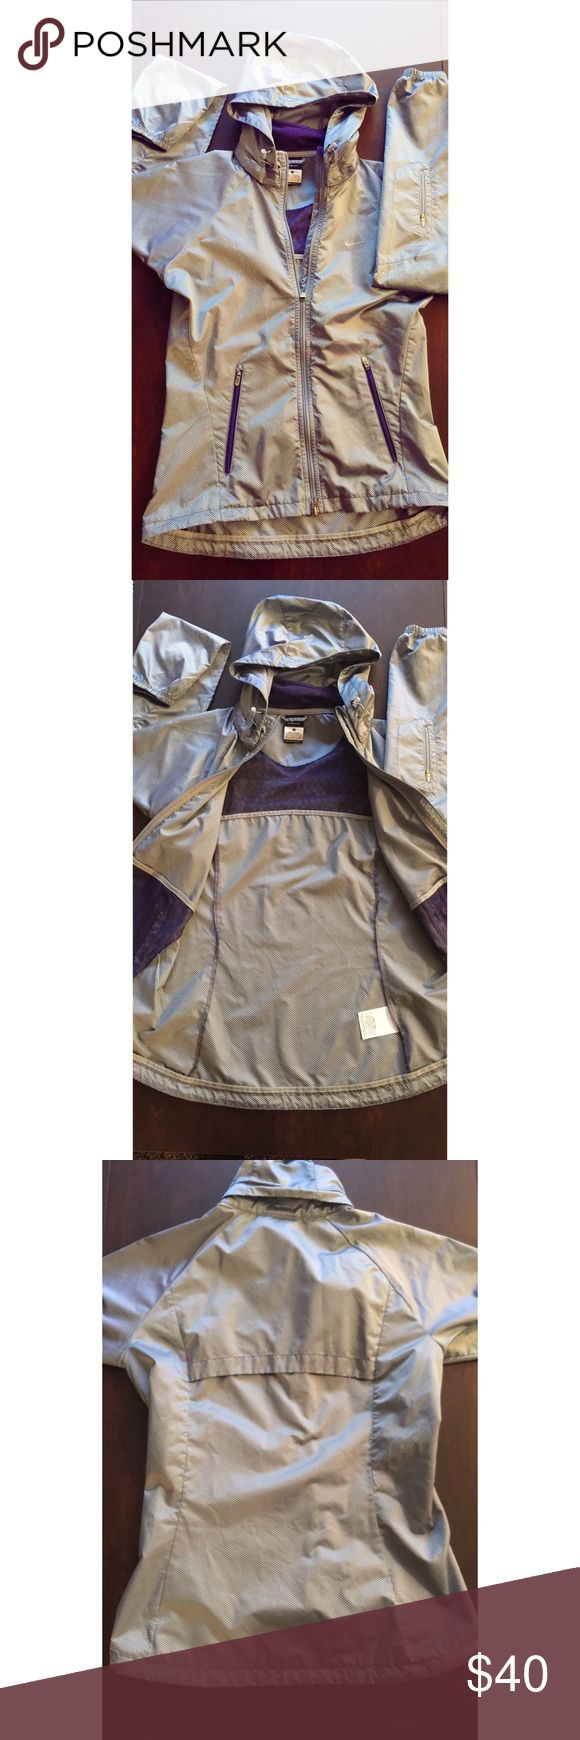 Silver and Purple Nike Rain Jacket Adorable rain jacket - love the purple accent! Originally from Nike, great for the rain and for layering. Removeable hood. Size small and fits like a small. Like new condition. ☔️👌🏻 Nike Jackets & Coats